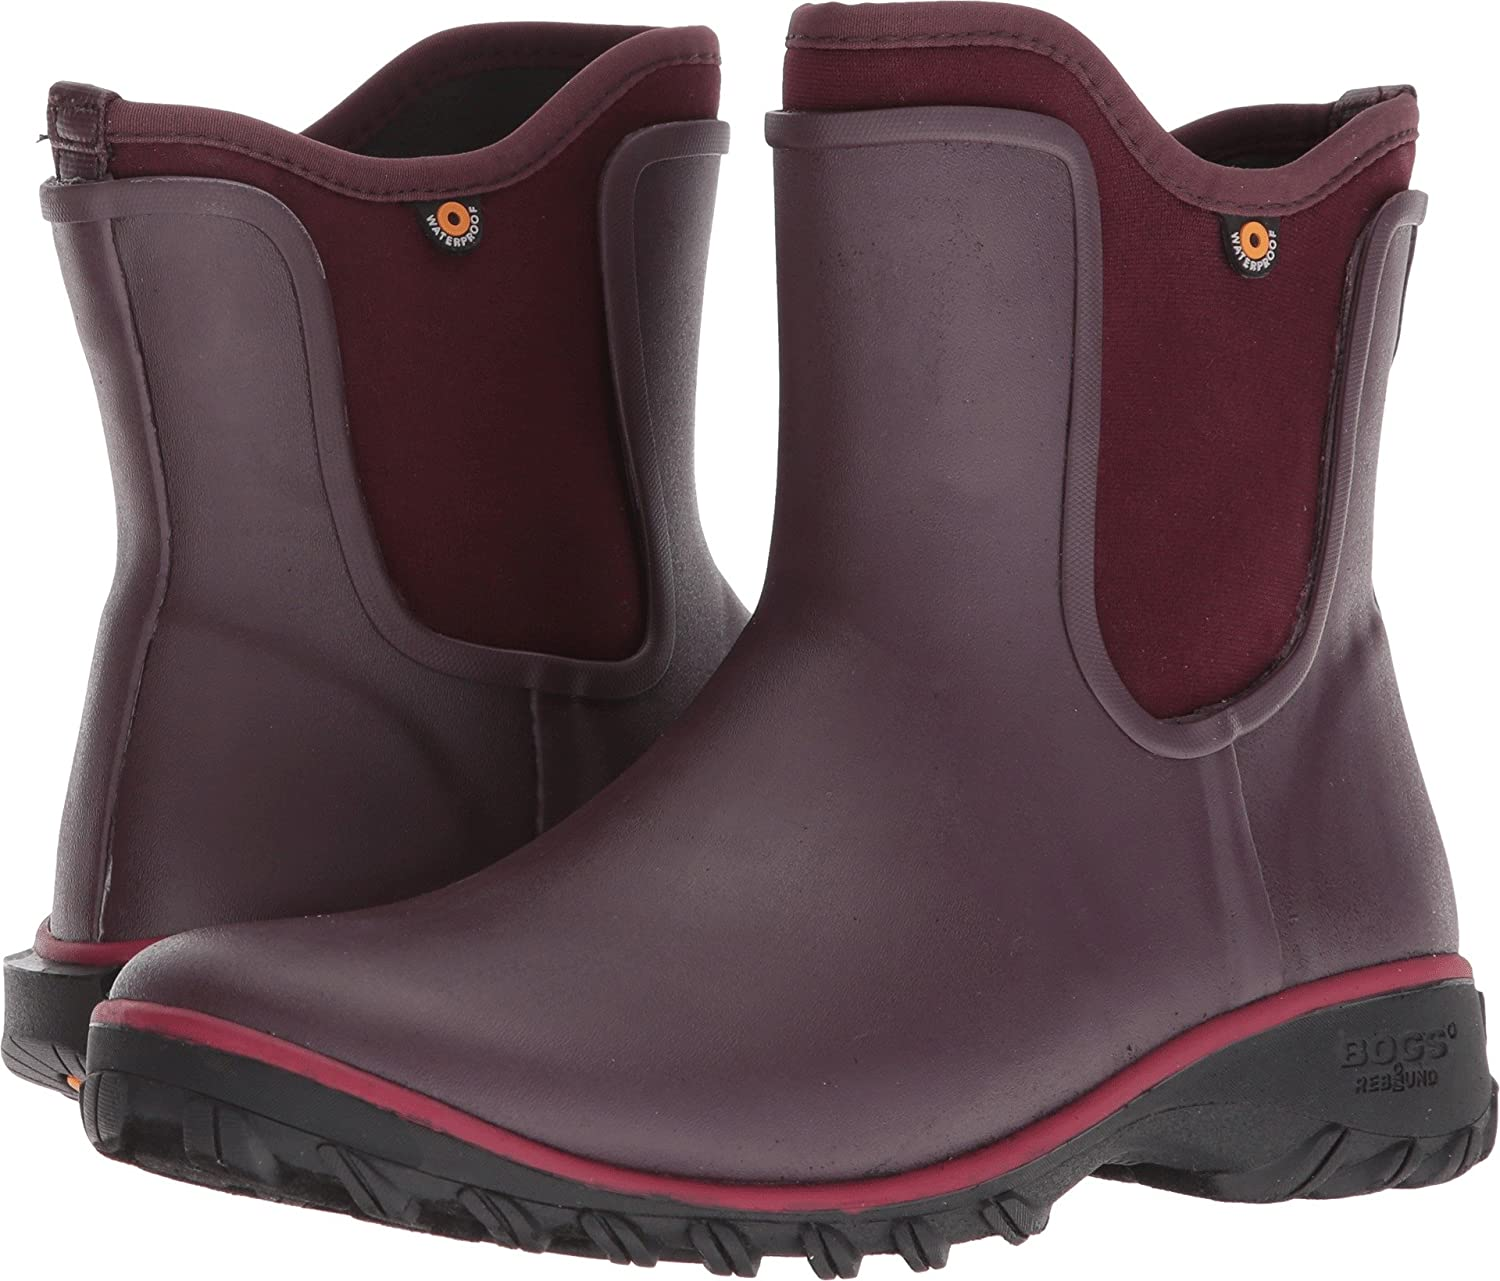 Bogs Women's Sauvie Solid Slip-On Boot Wine 6 B US